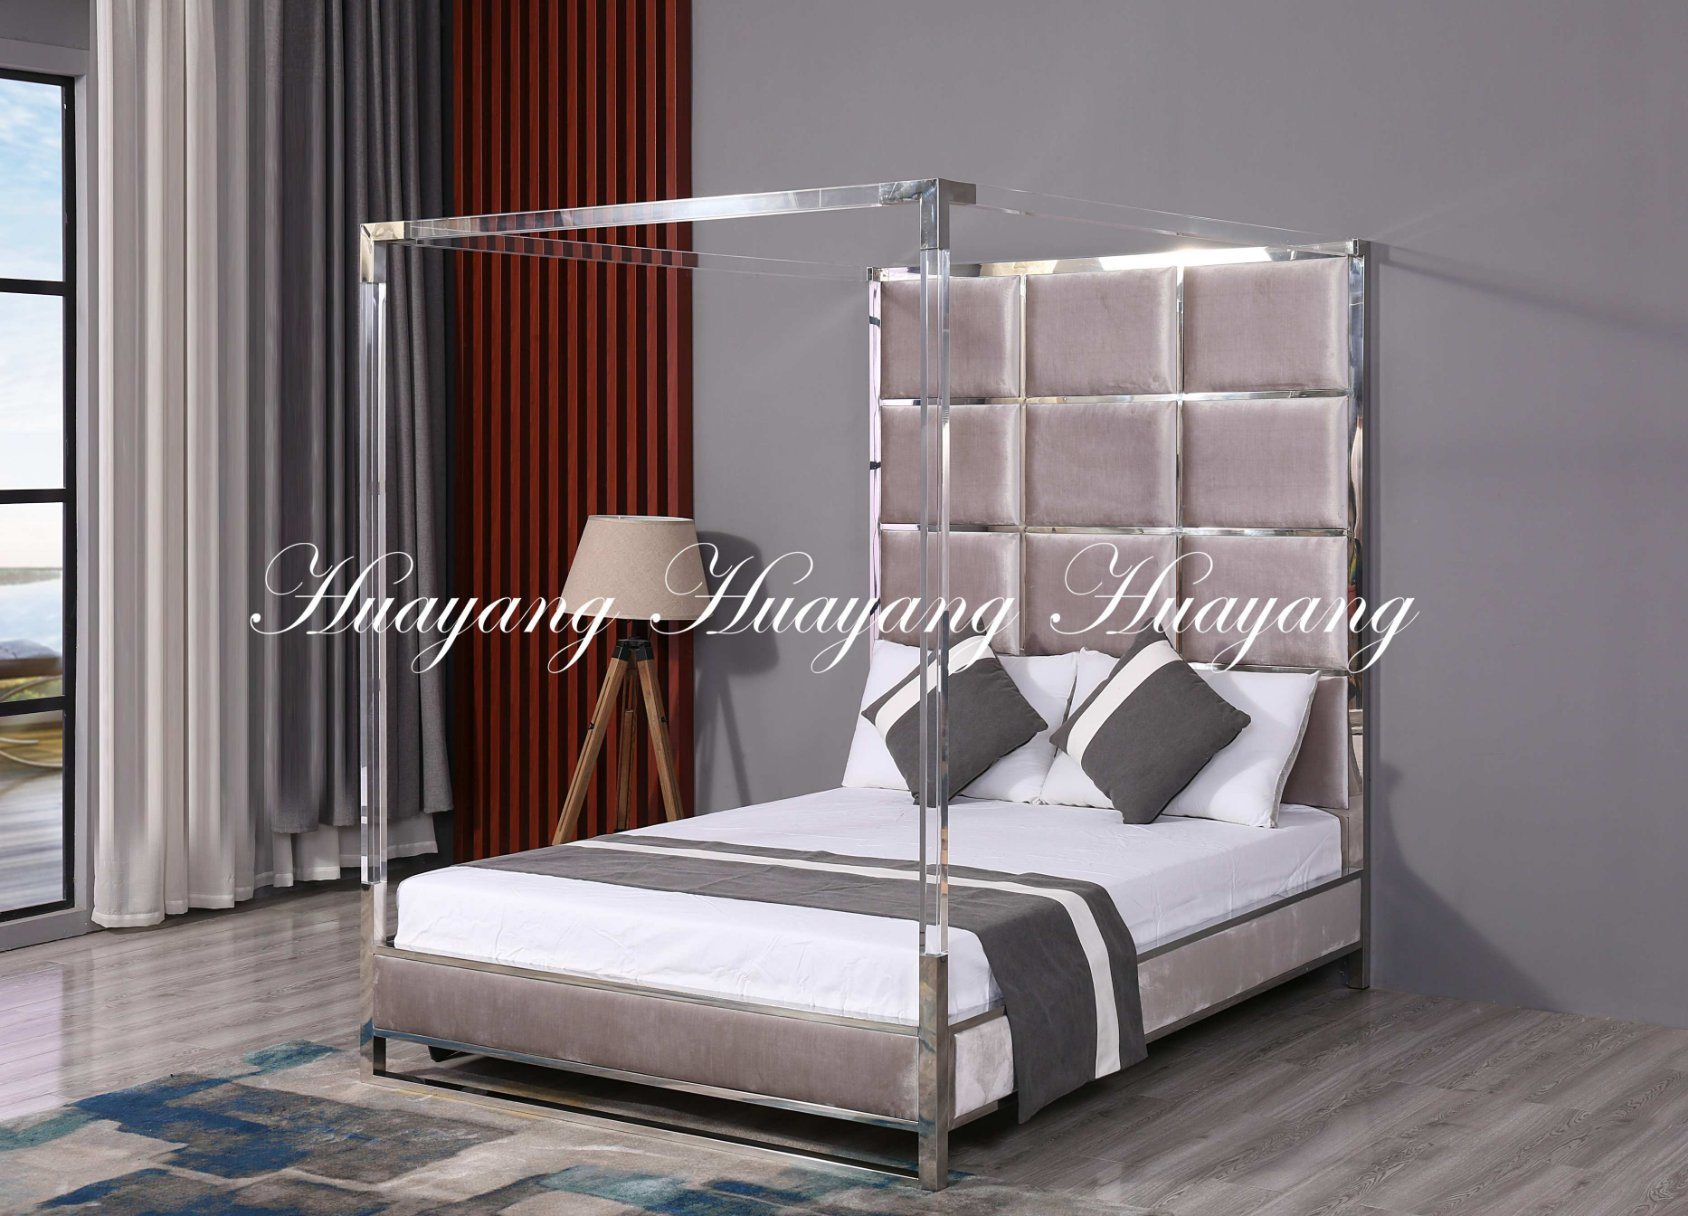 China Double Bed Modern Bed Luxury Stainless Steel Upholstery Bed Furniture China Double Bed Bedroom Bed